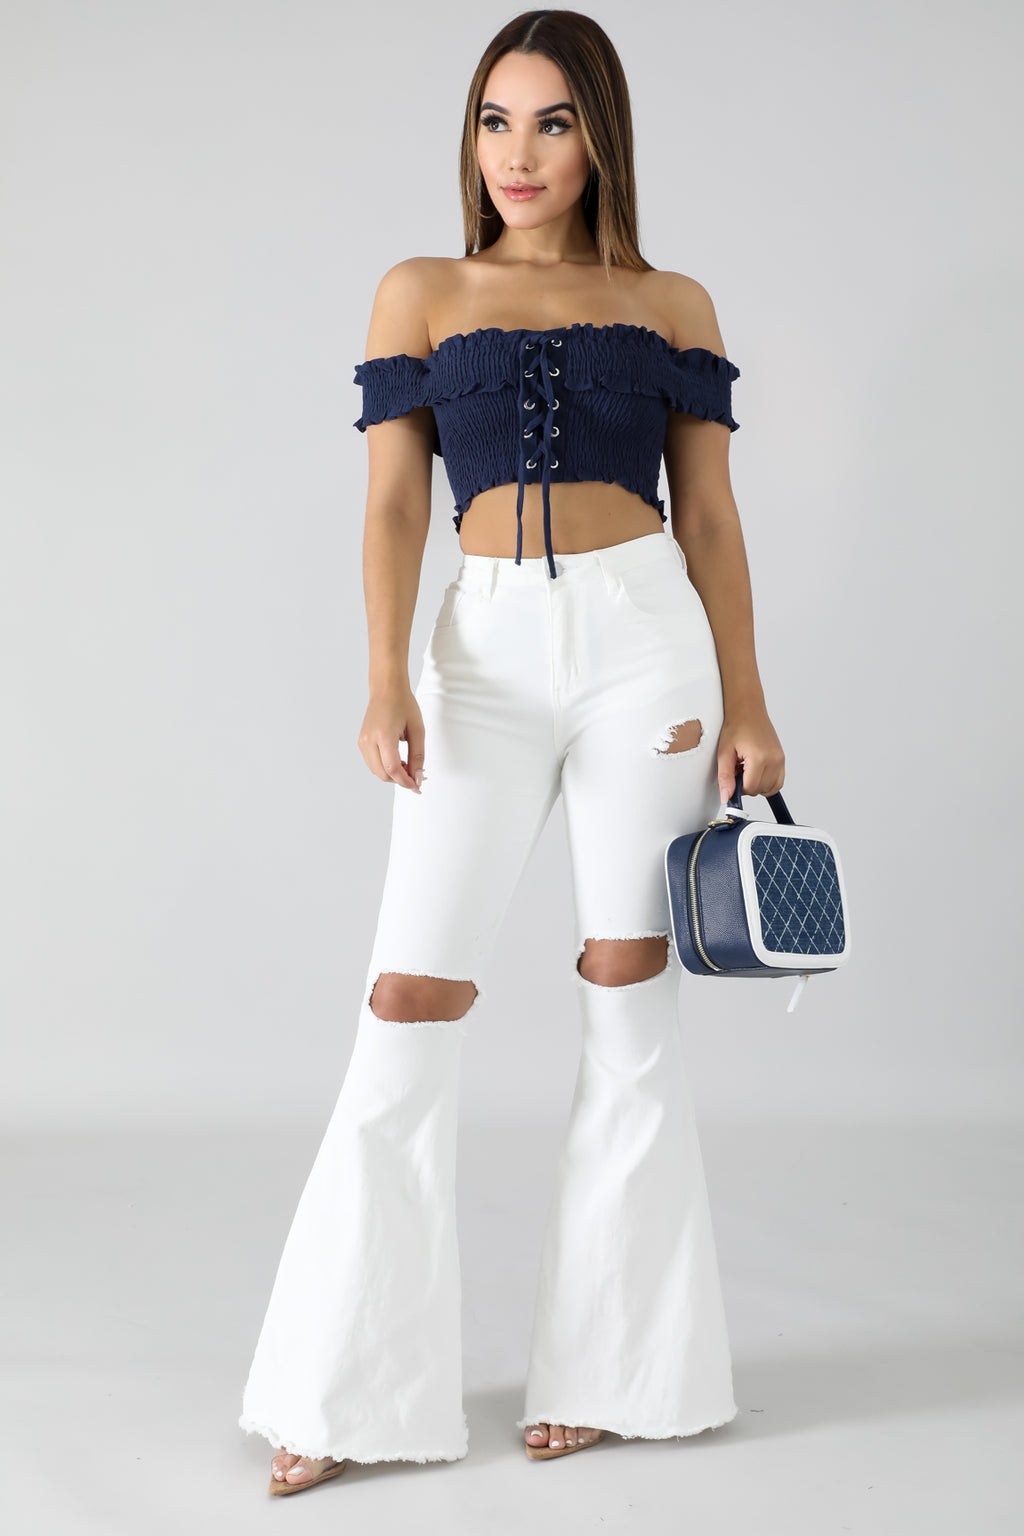 Accordion Tube Top